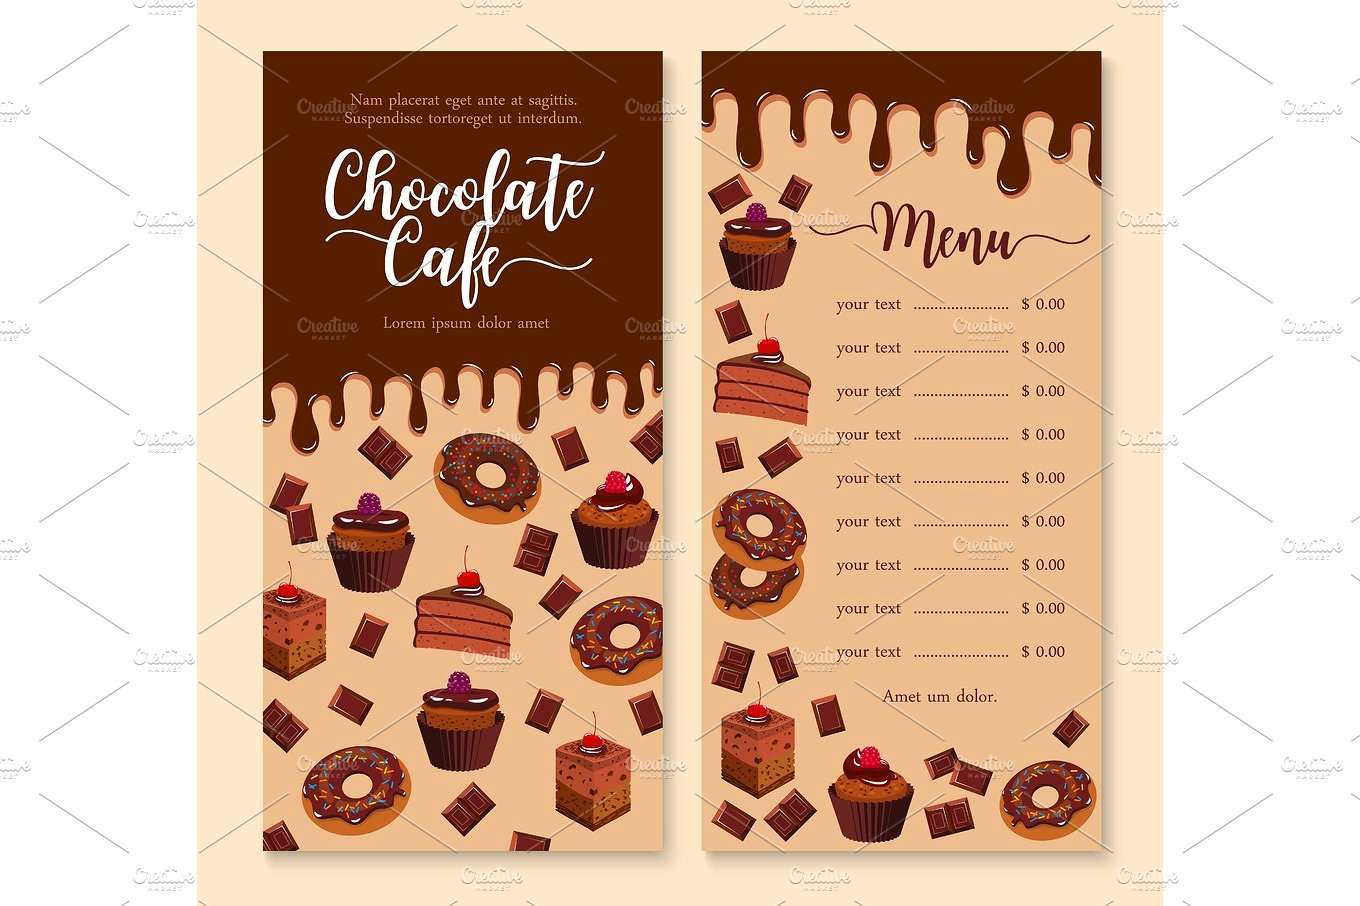 chocolate cake and dessert menu example